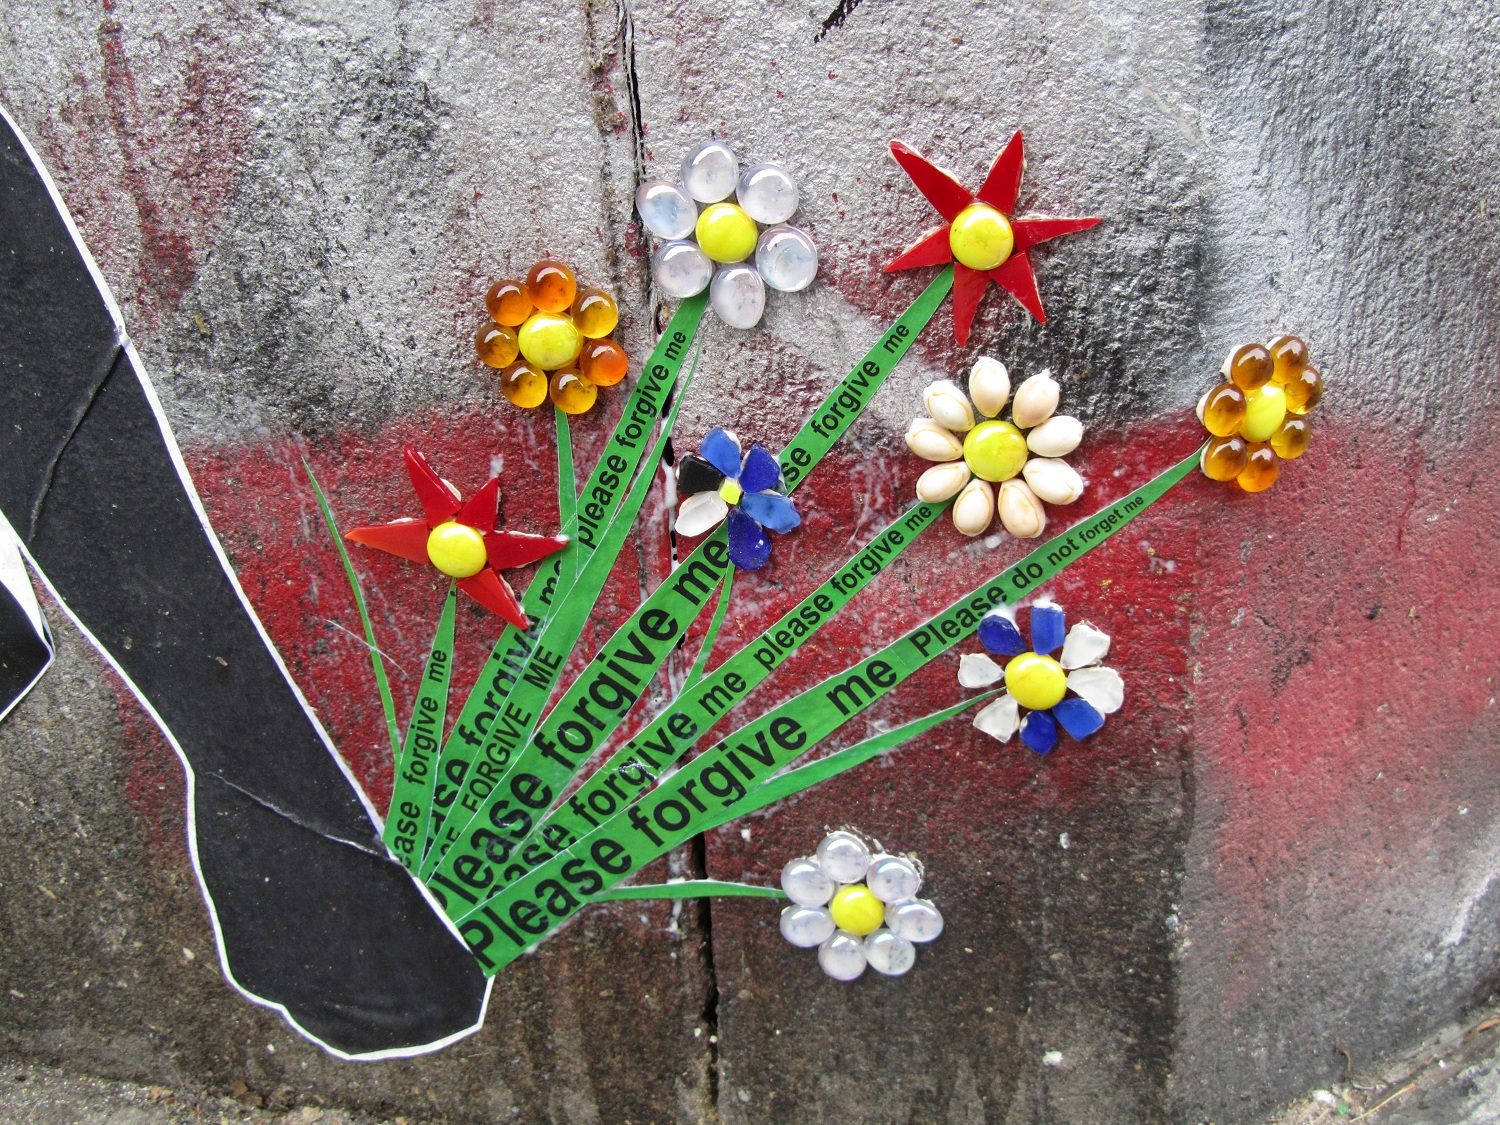 Wing_Street_Art_Glass_Mosaic_Warrior_Flowers_Detail.jpg